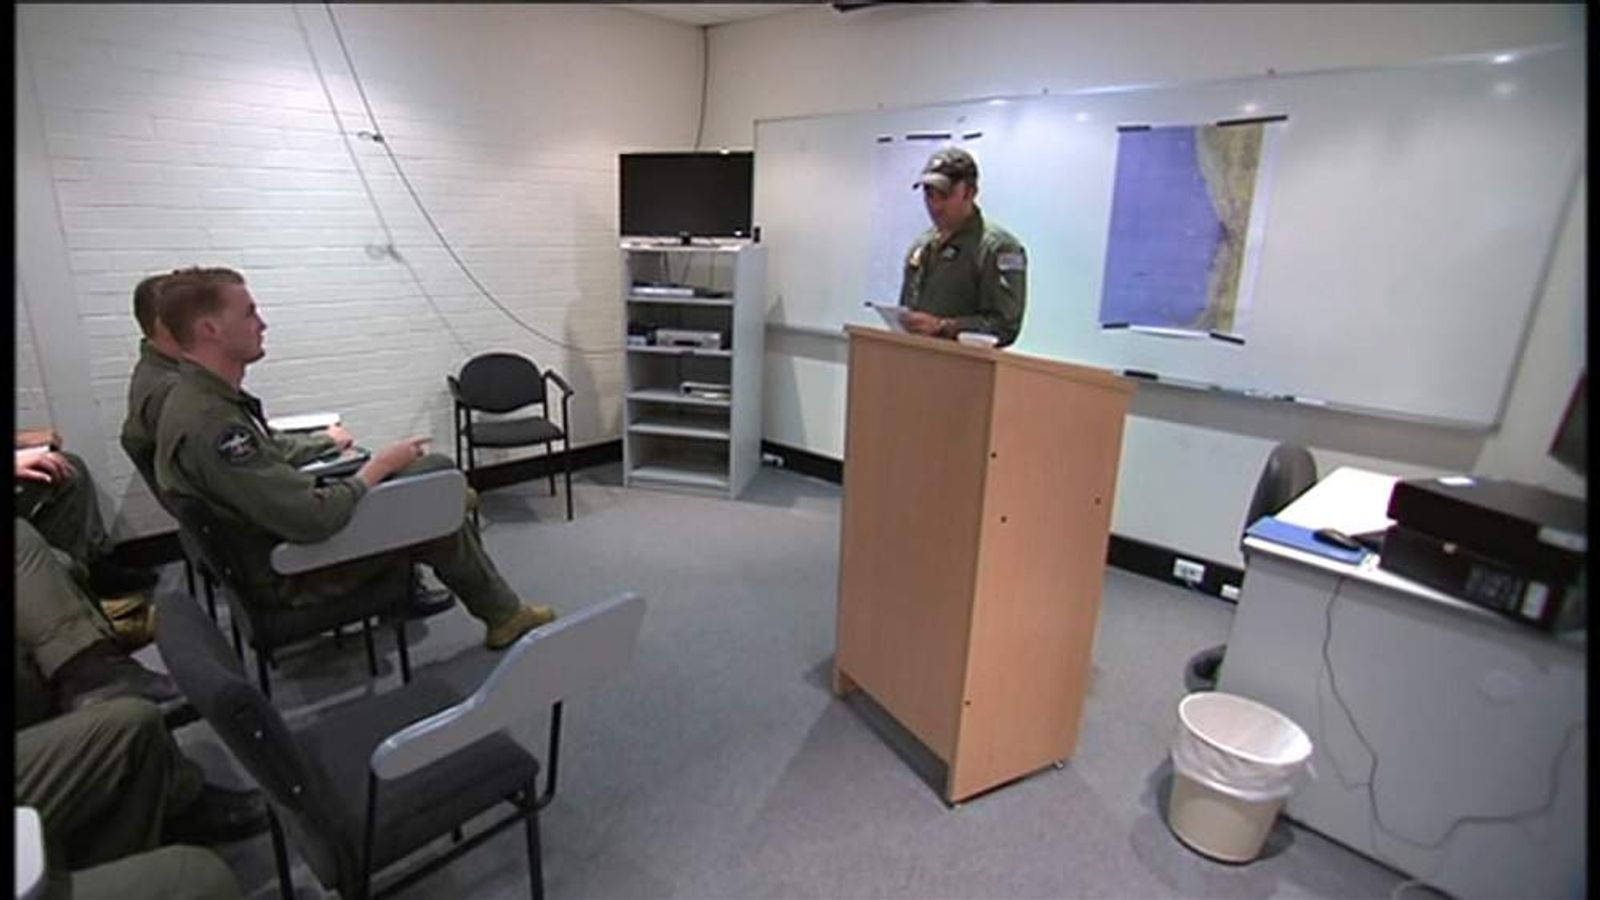 Australia Air Force briefing on search for objects in Indian Ocean